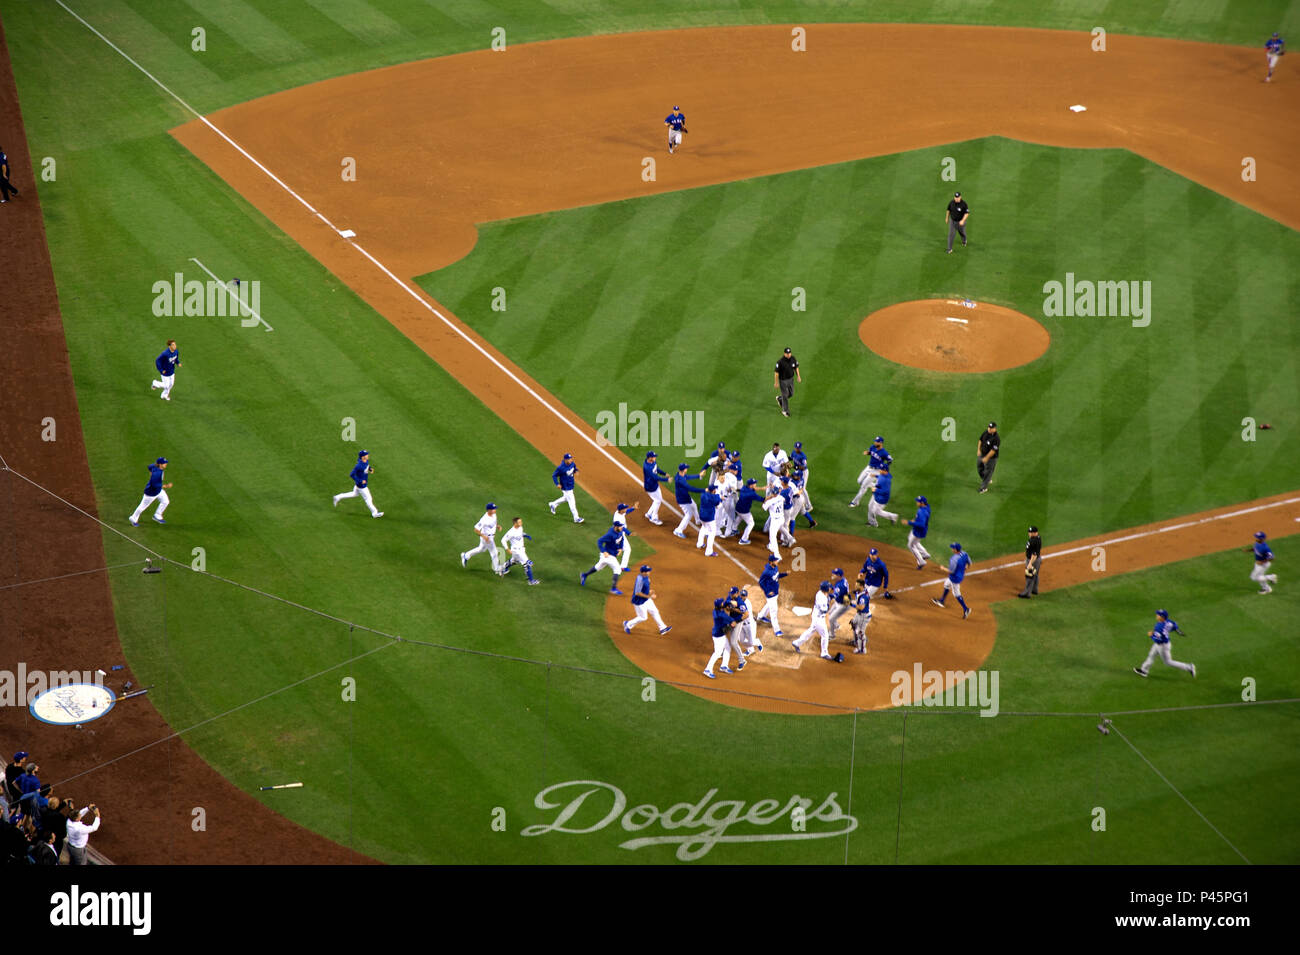 A fight erupts during Dodgers game at Dodger Stadium in Los Angeles,CA - Stock Image